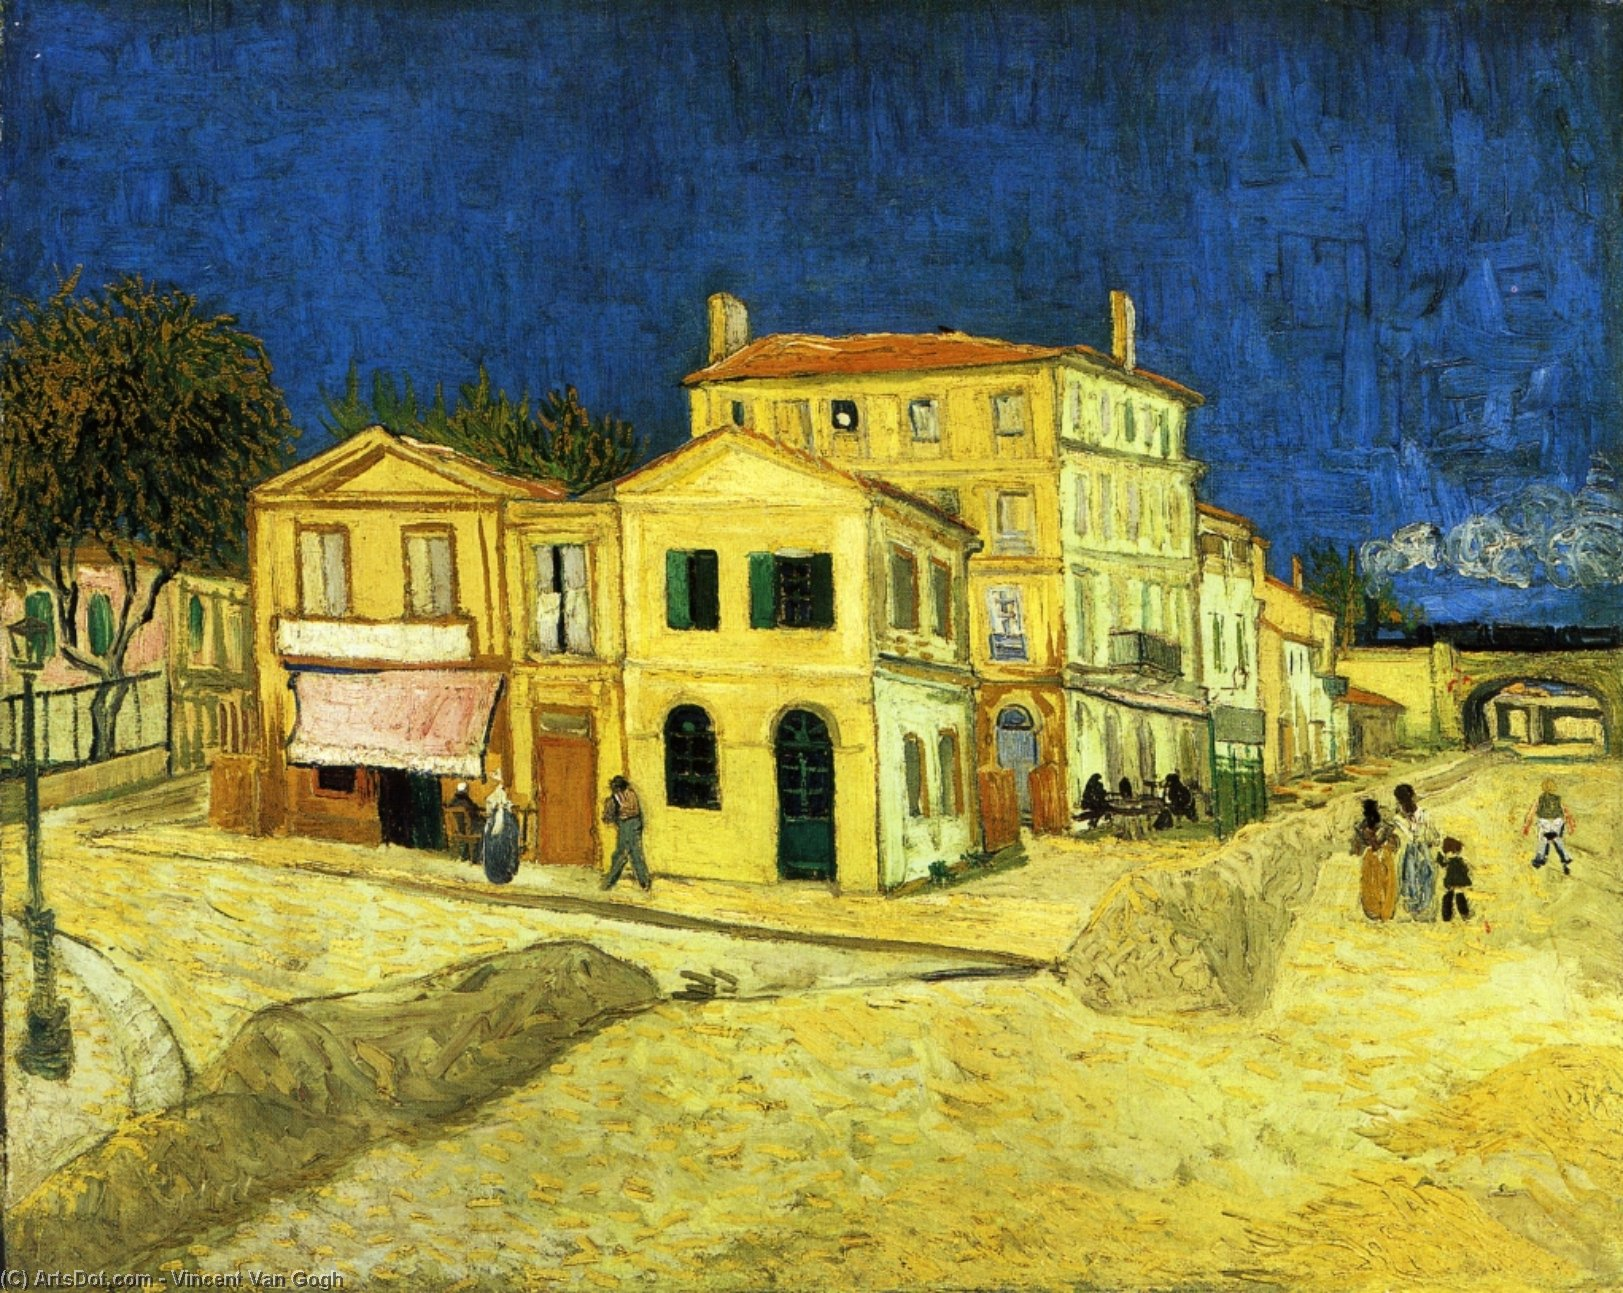 Wikioo.org - The Encyclopedia of Fine Arts - Painting, Artwork by Vincent Van Gogh - The Street, the Yellow House